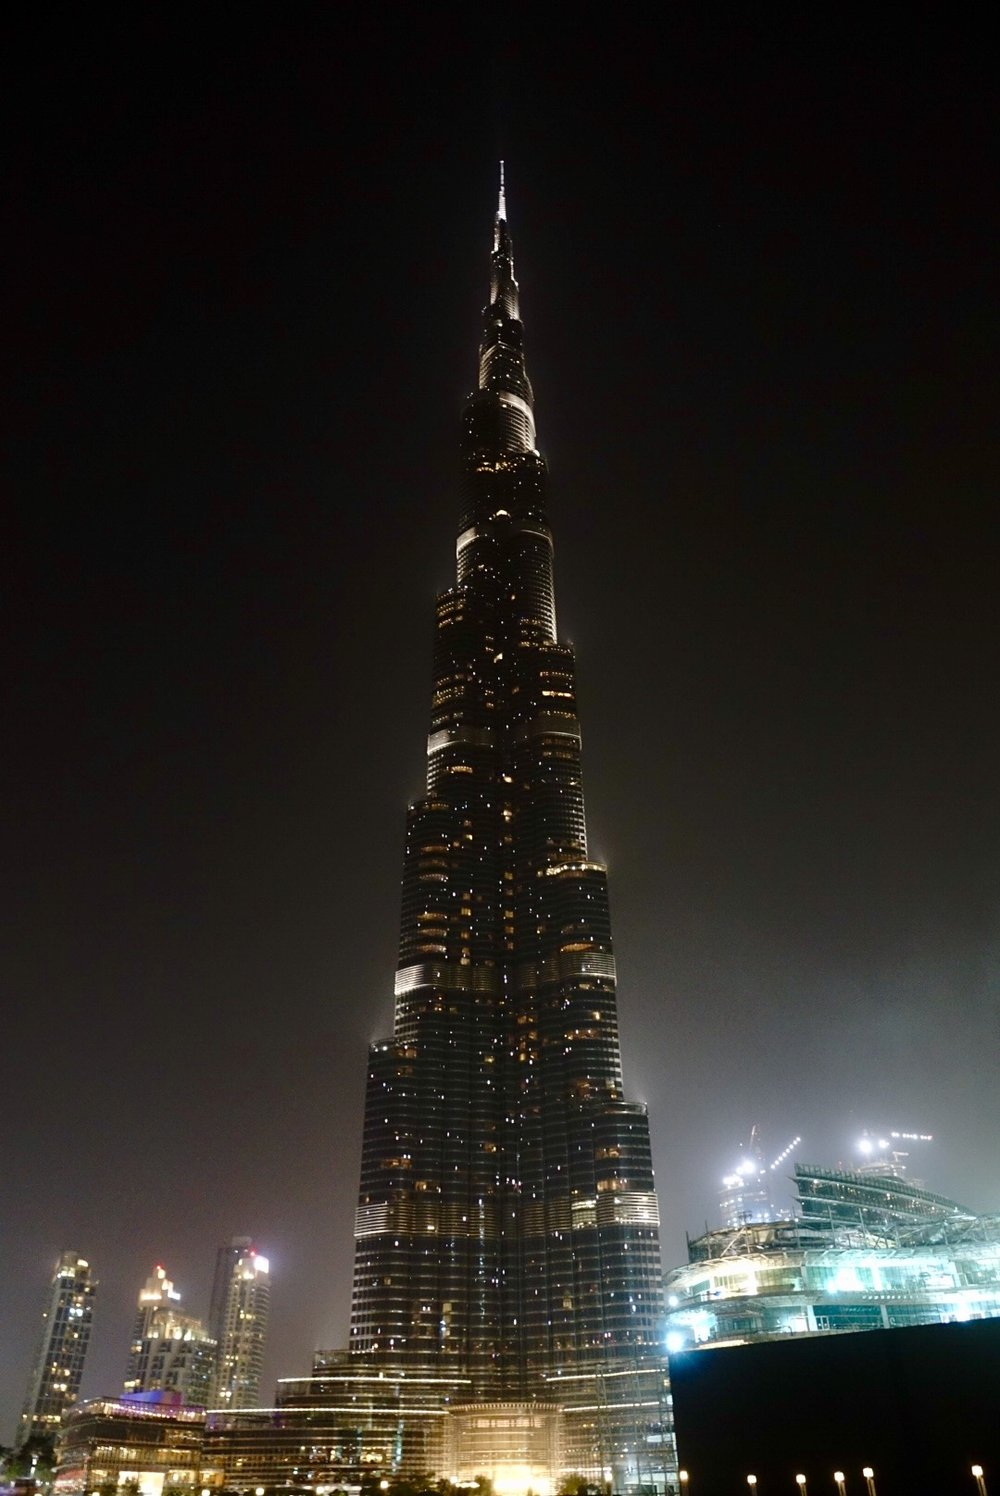 The Burj Khalifa 2